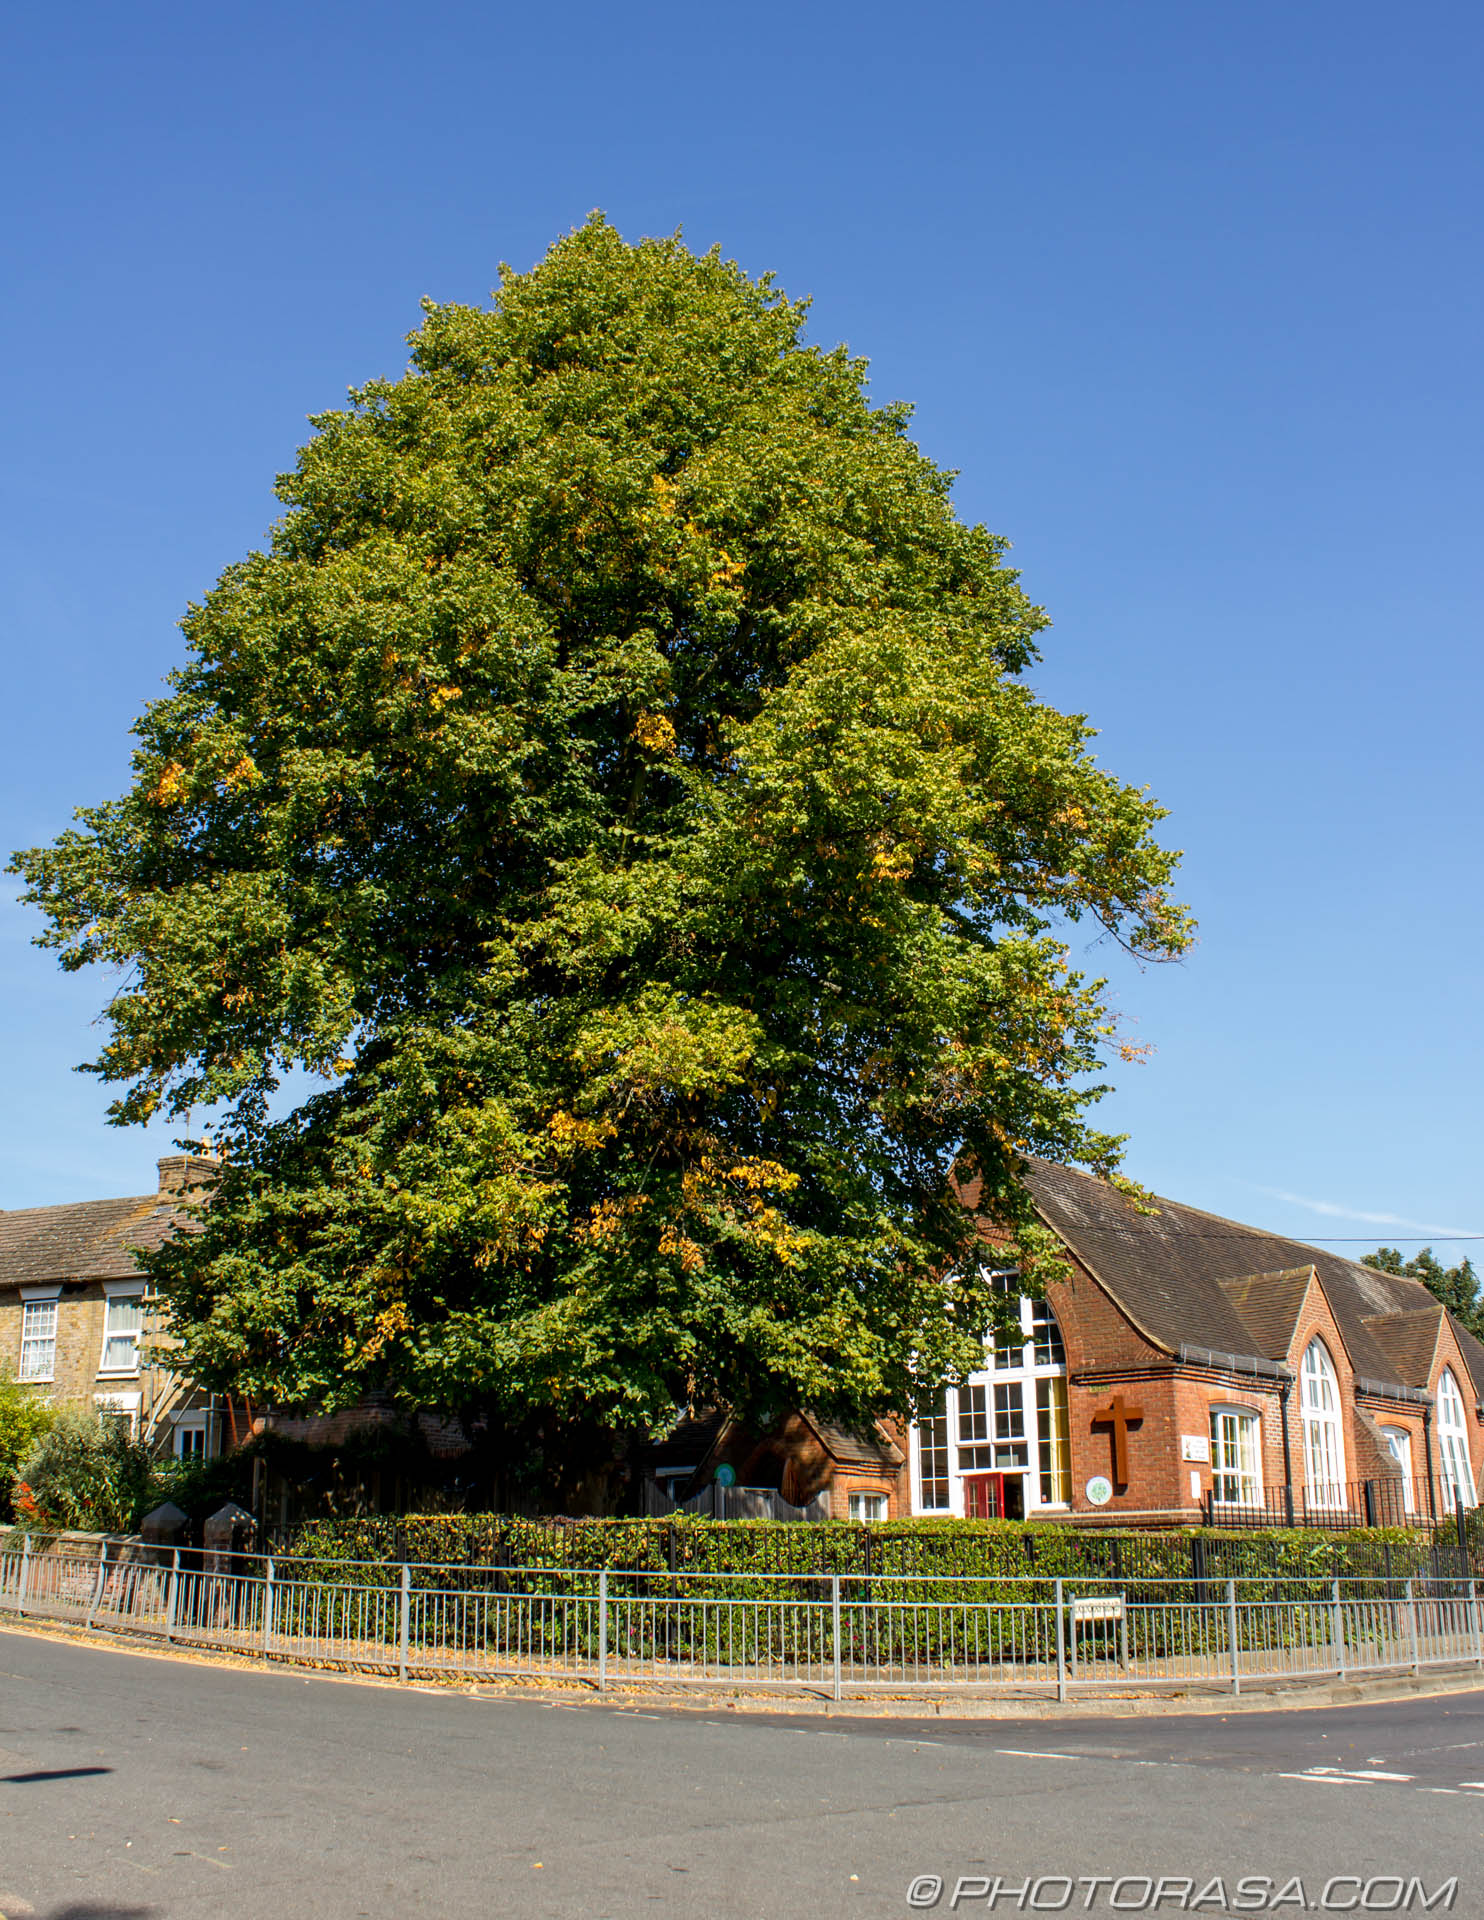 http://photorasa.com/maidstone/large-oak-tree-outside-school/